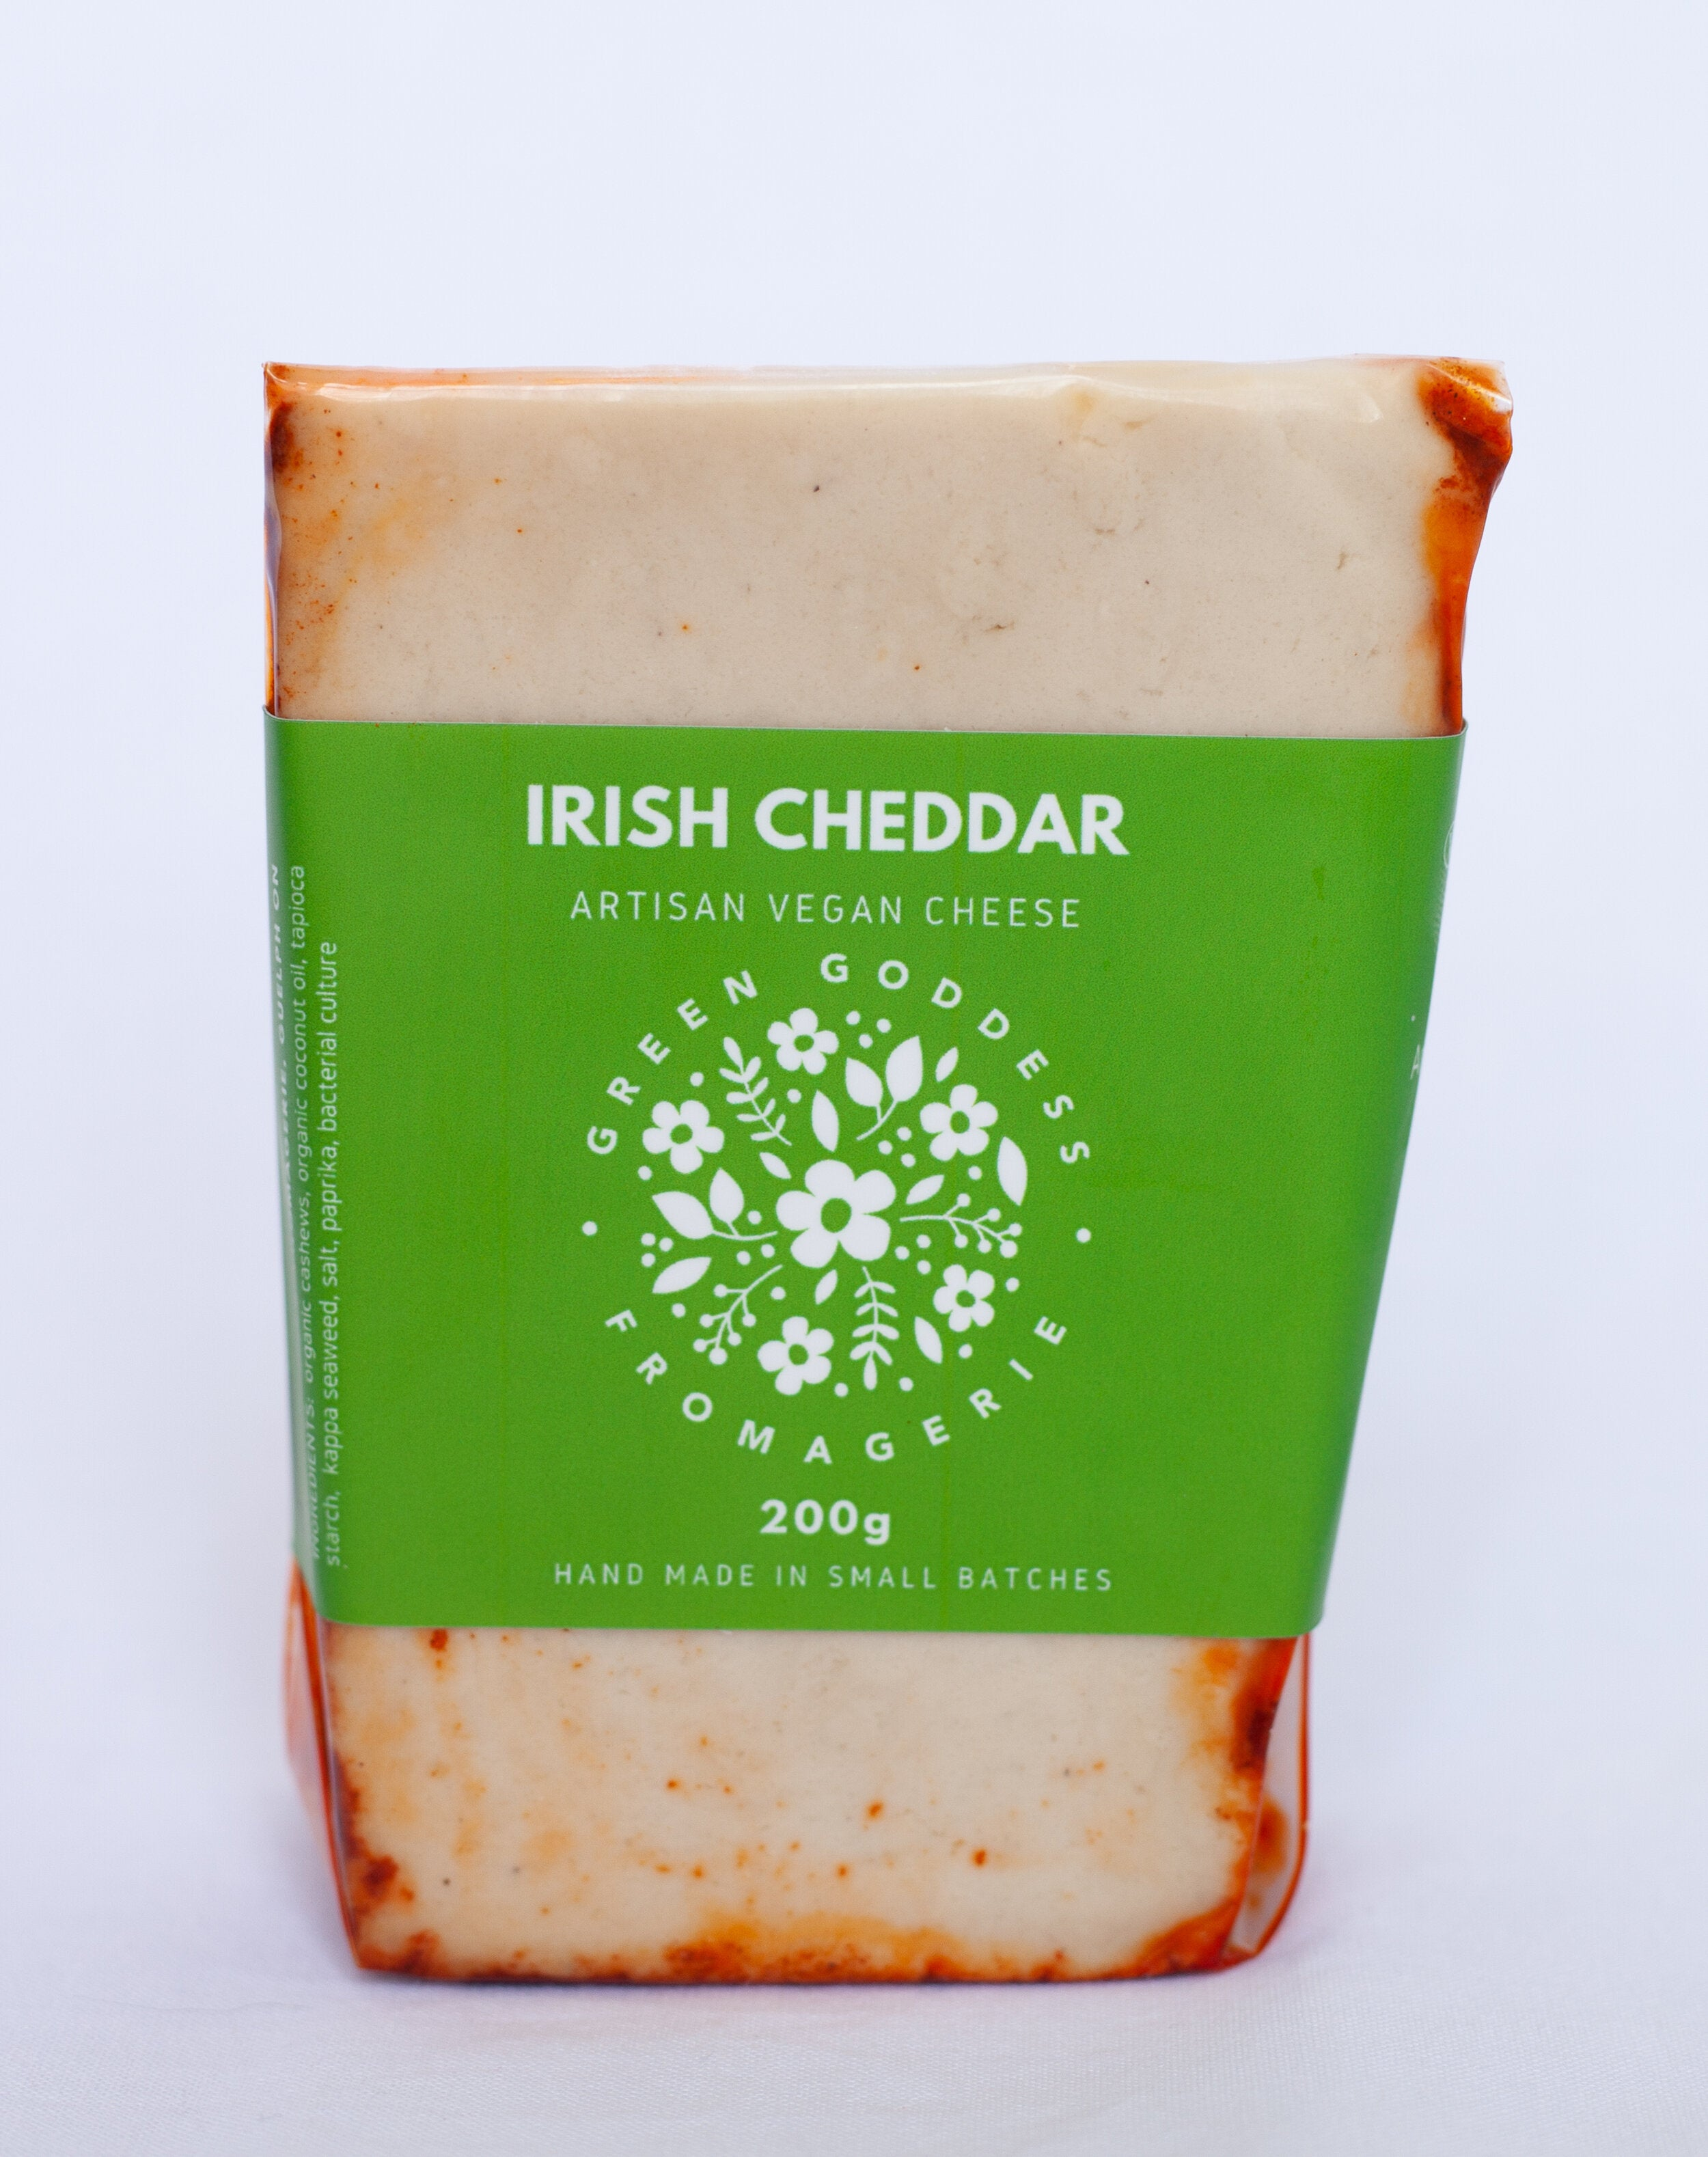 GREEN GODDESS IRISH CHEDDAR